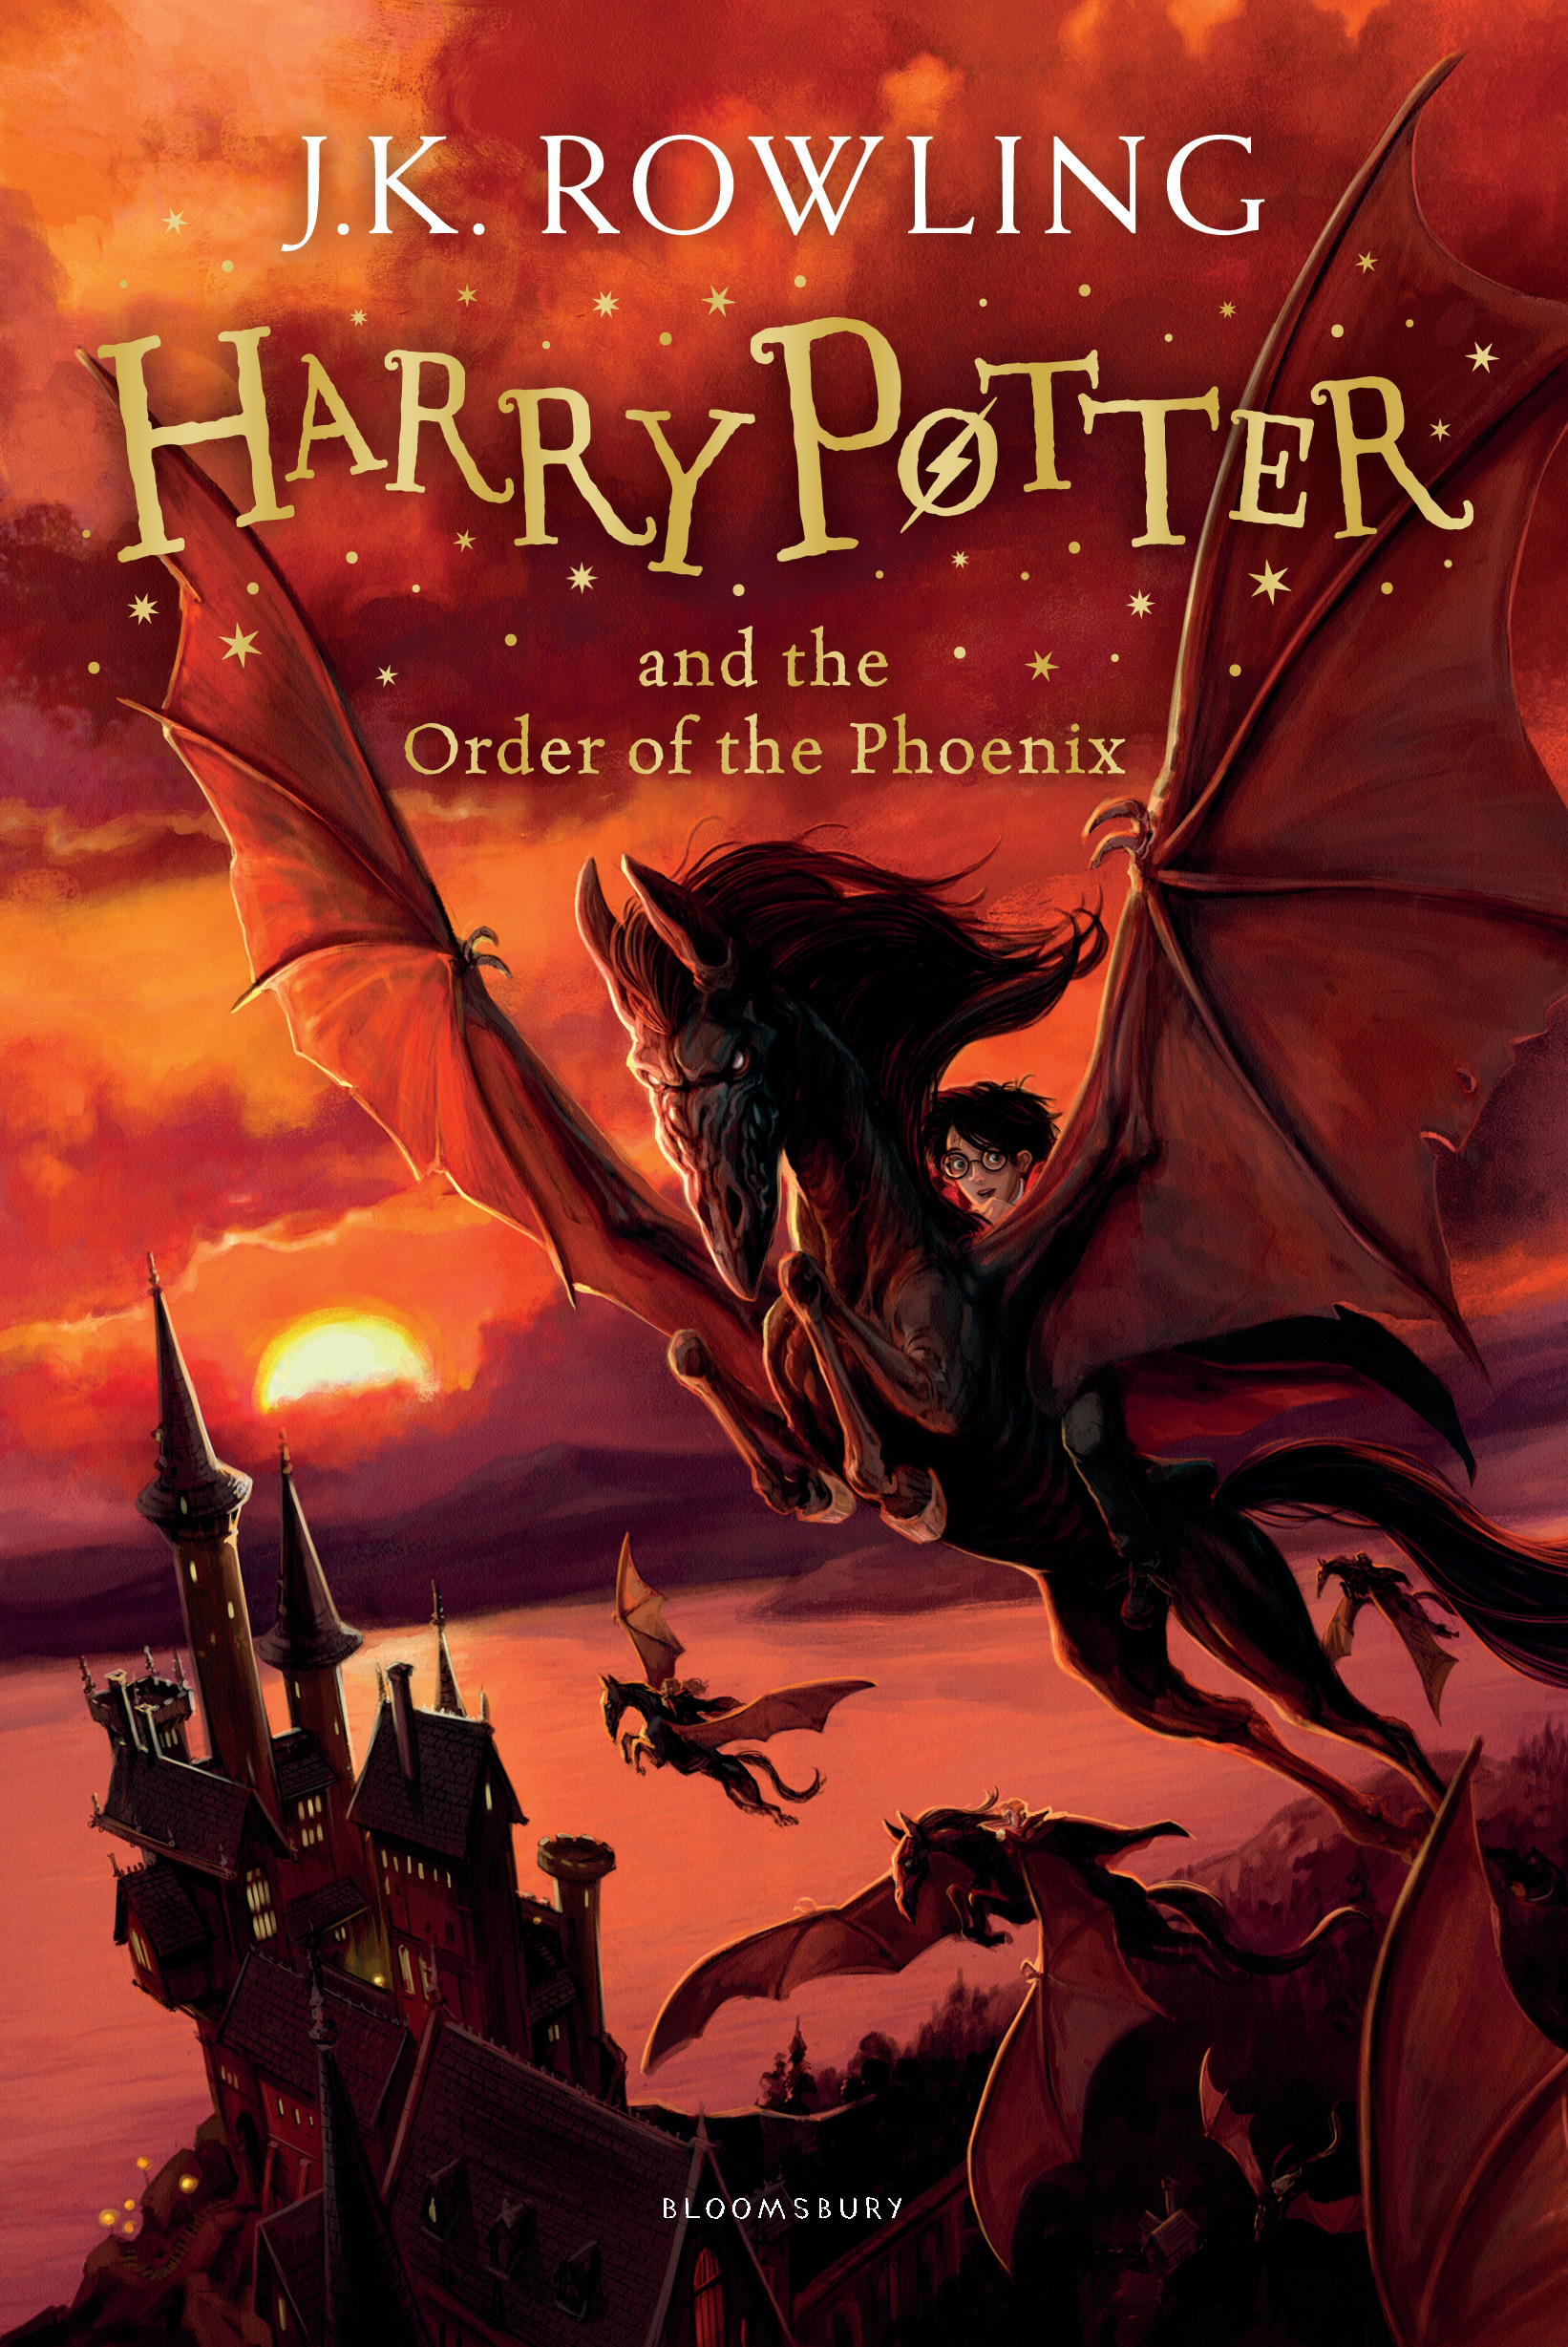 Harry Potter and the Order of the Phoenix by J.K. Rowling, ISBN: 9781408855935